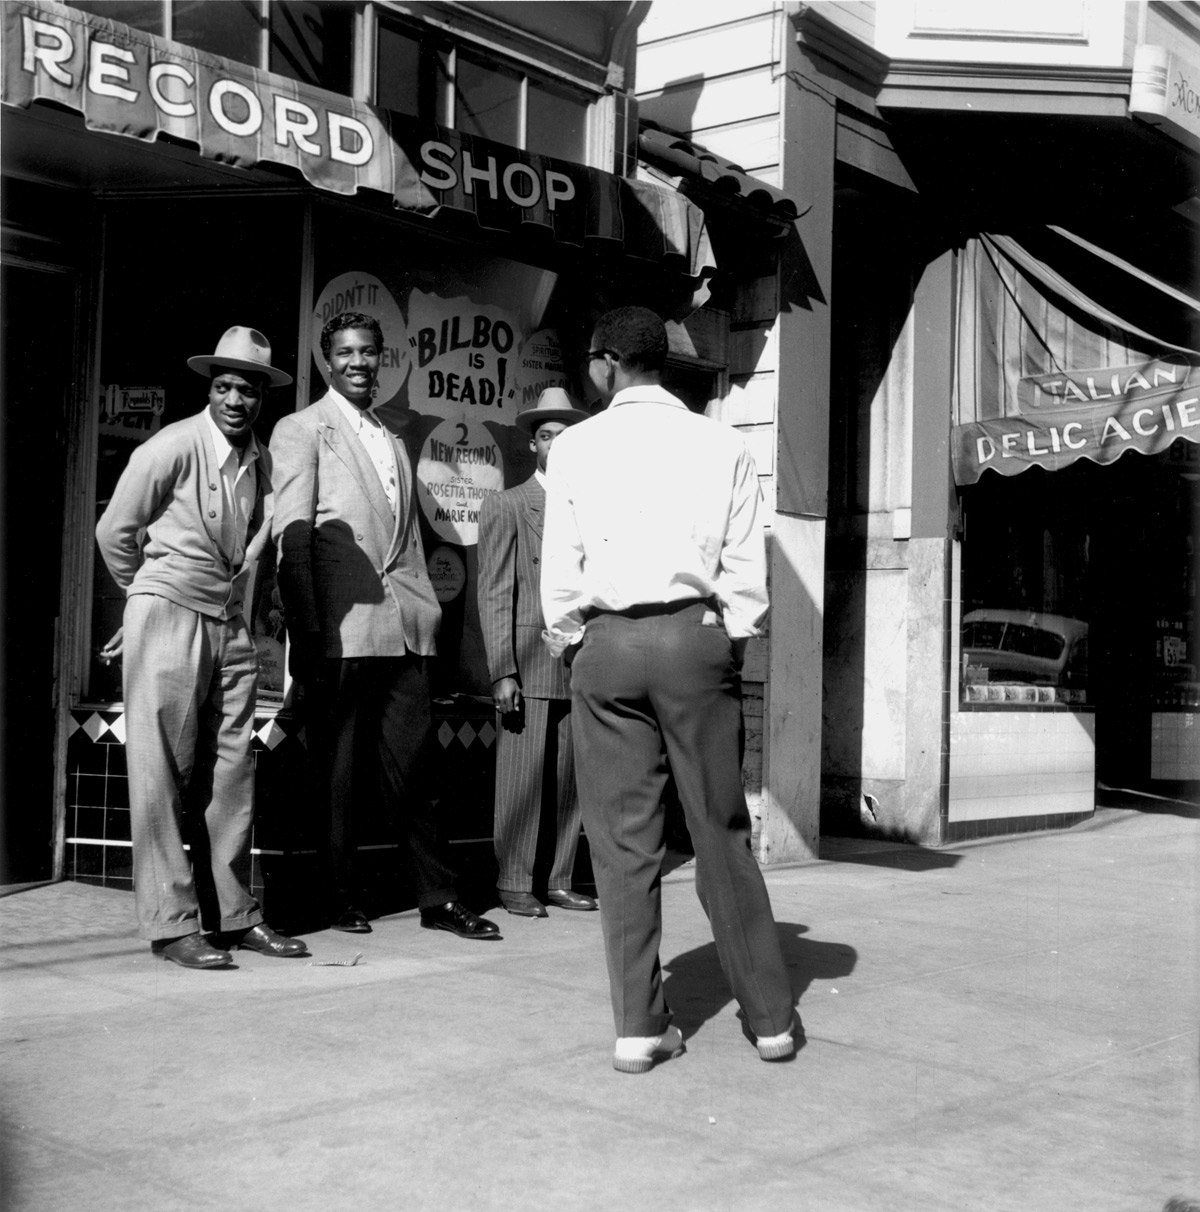 Photographer Made His Mark On Fillmore The New Fillmore